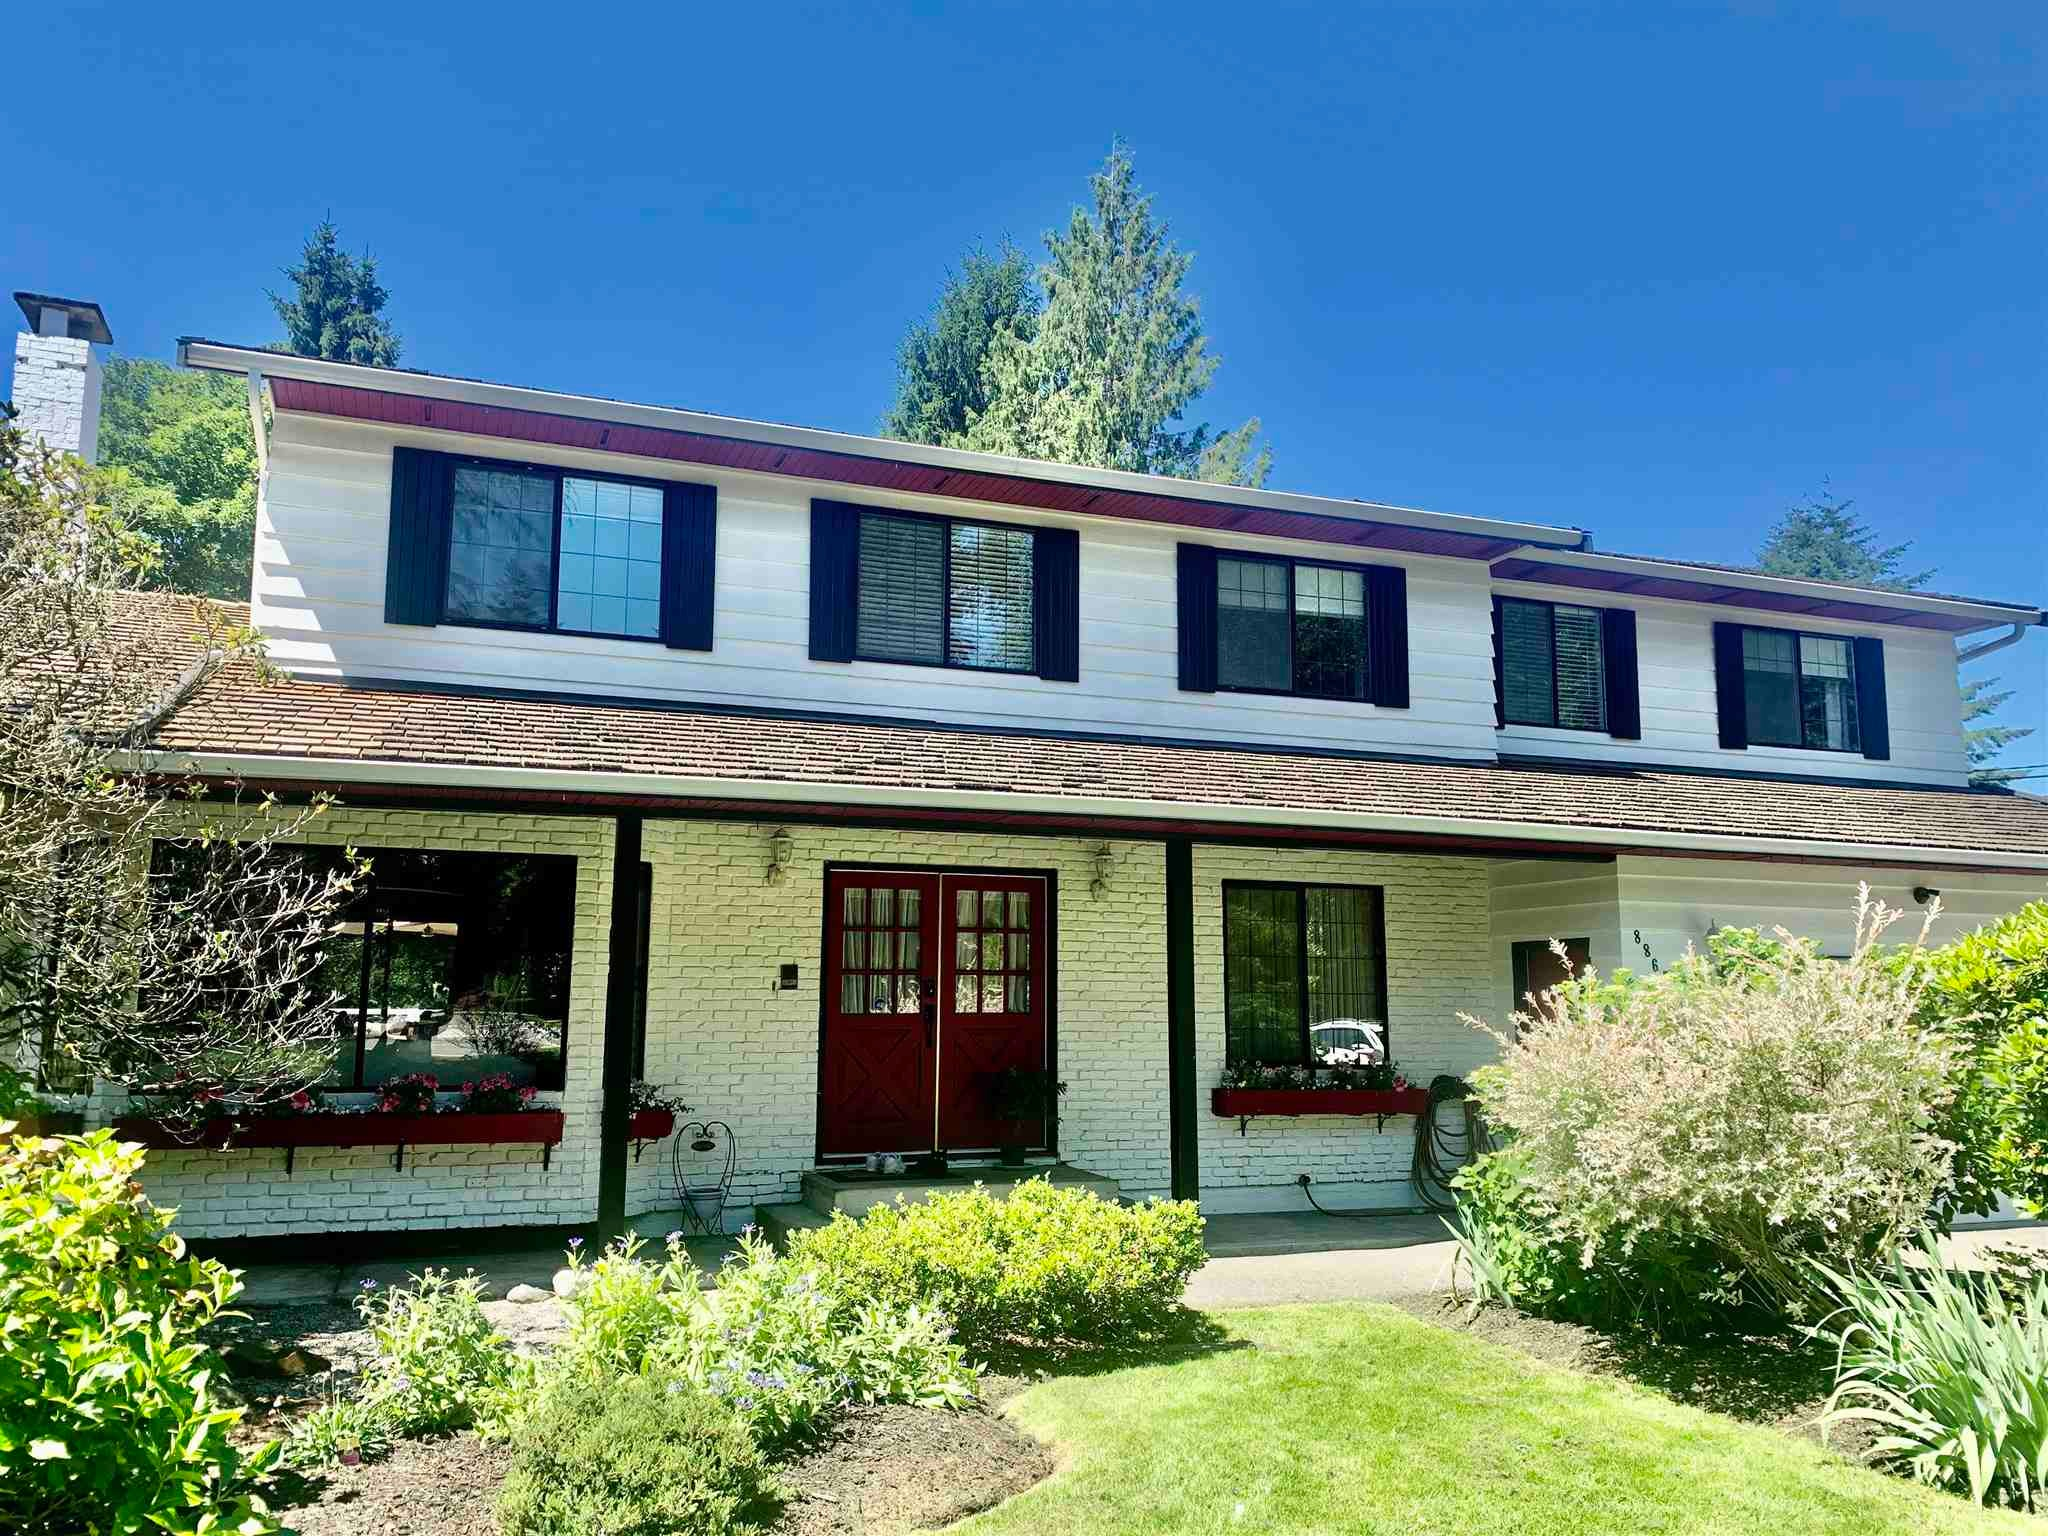 8865 WRIGHT STREET - Fort Langley House/Single Family for sale, 5 Bedrooms (R2596930) - #1